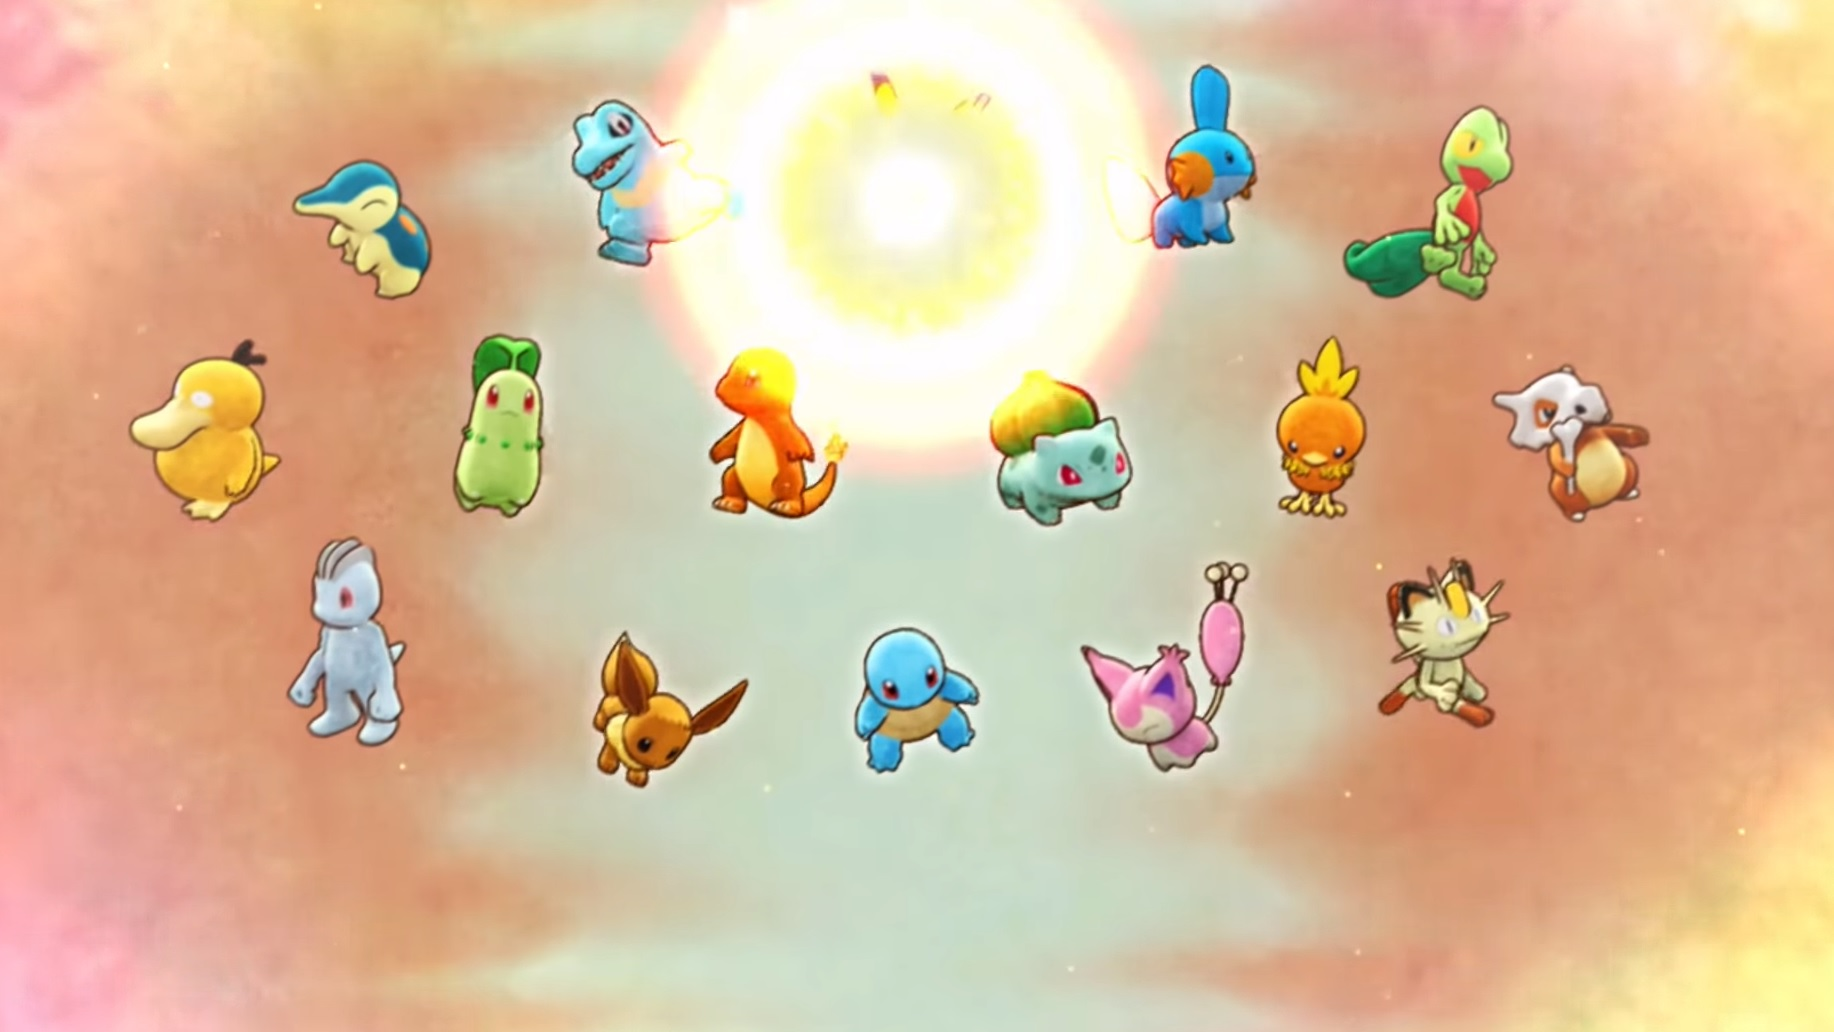 Here's another look at Pokemon Mystery Dungeon: Rescue Team DX screenshot